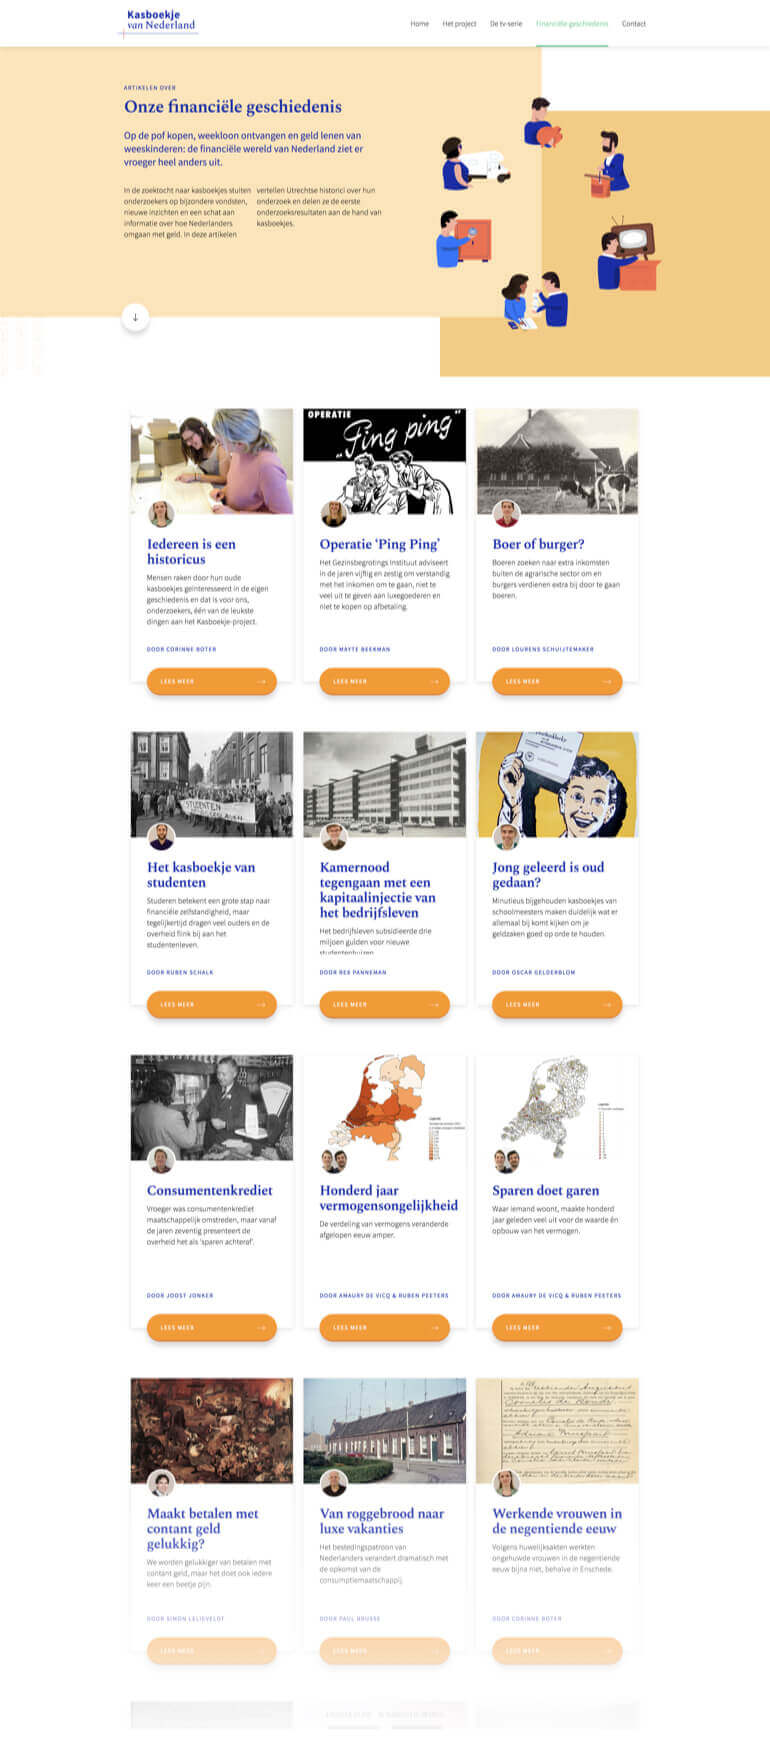 Kaboekje van Nederland page showing all the articles and research